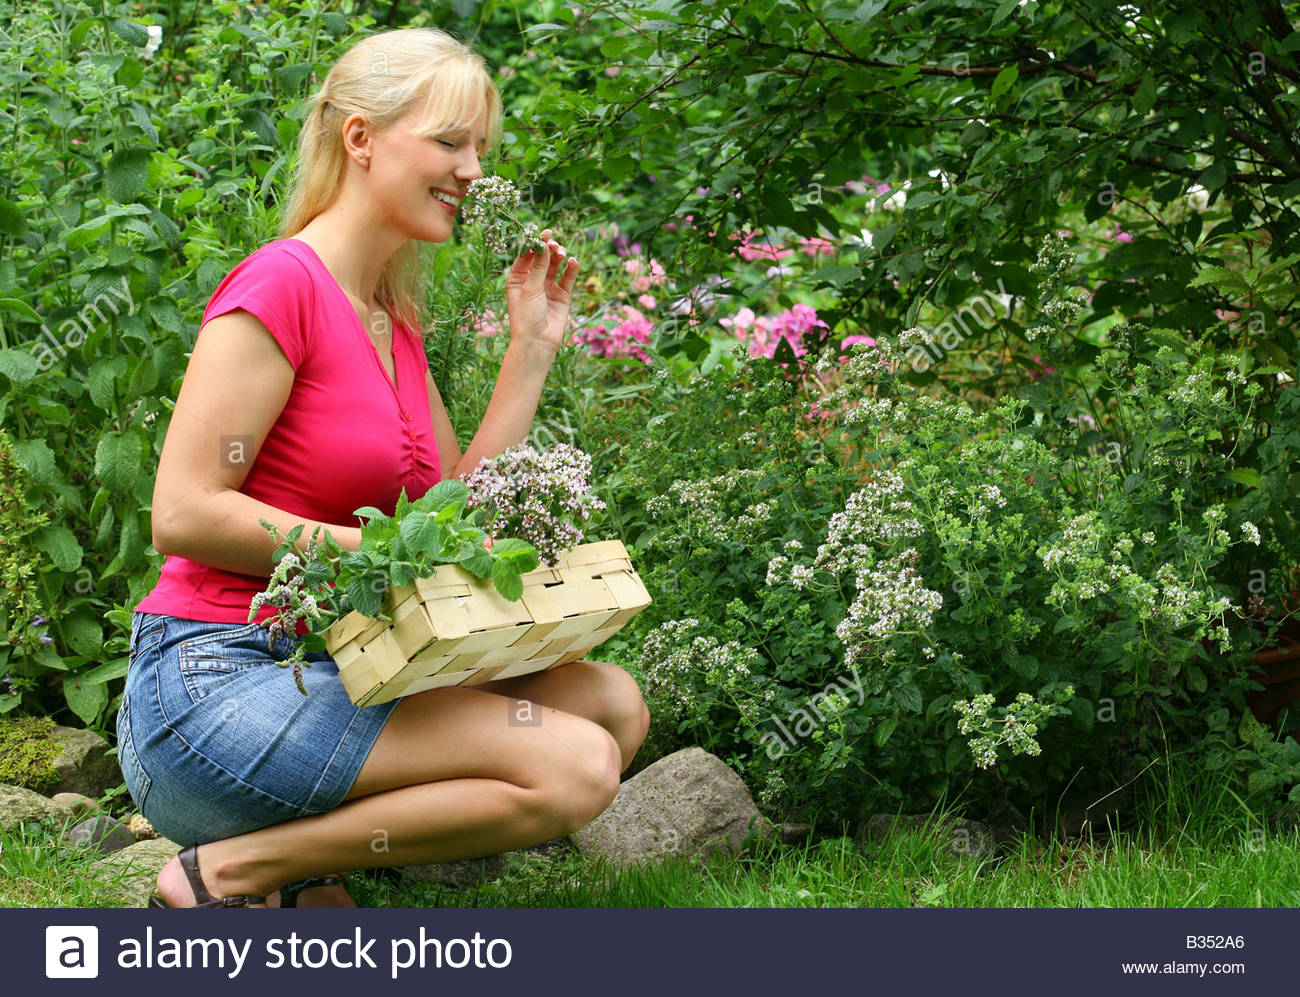 young woman with basket full of herbs and lavender kneeling in the garden Stock Photo